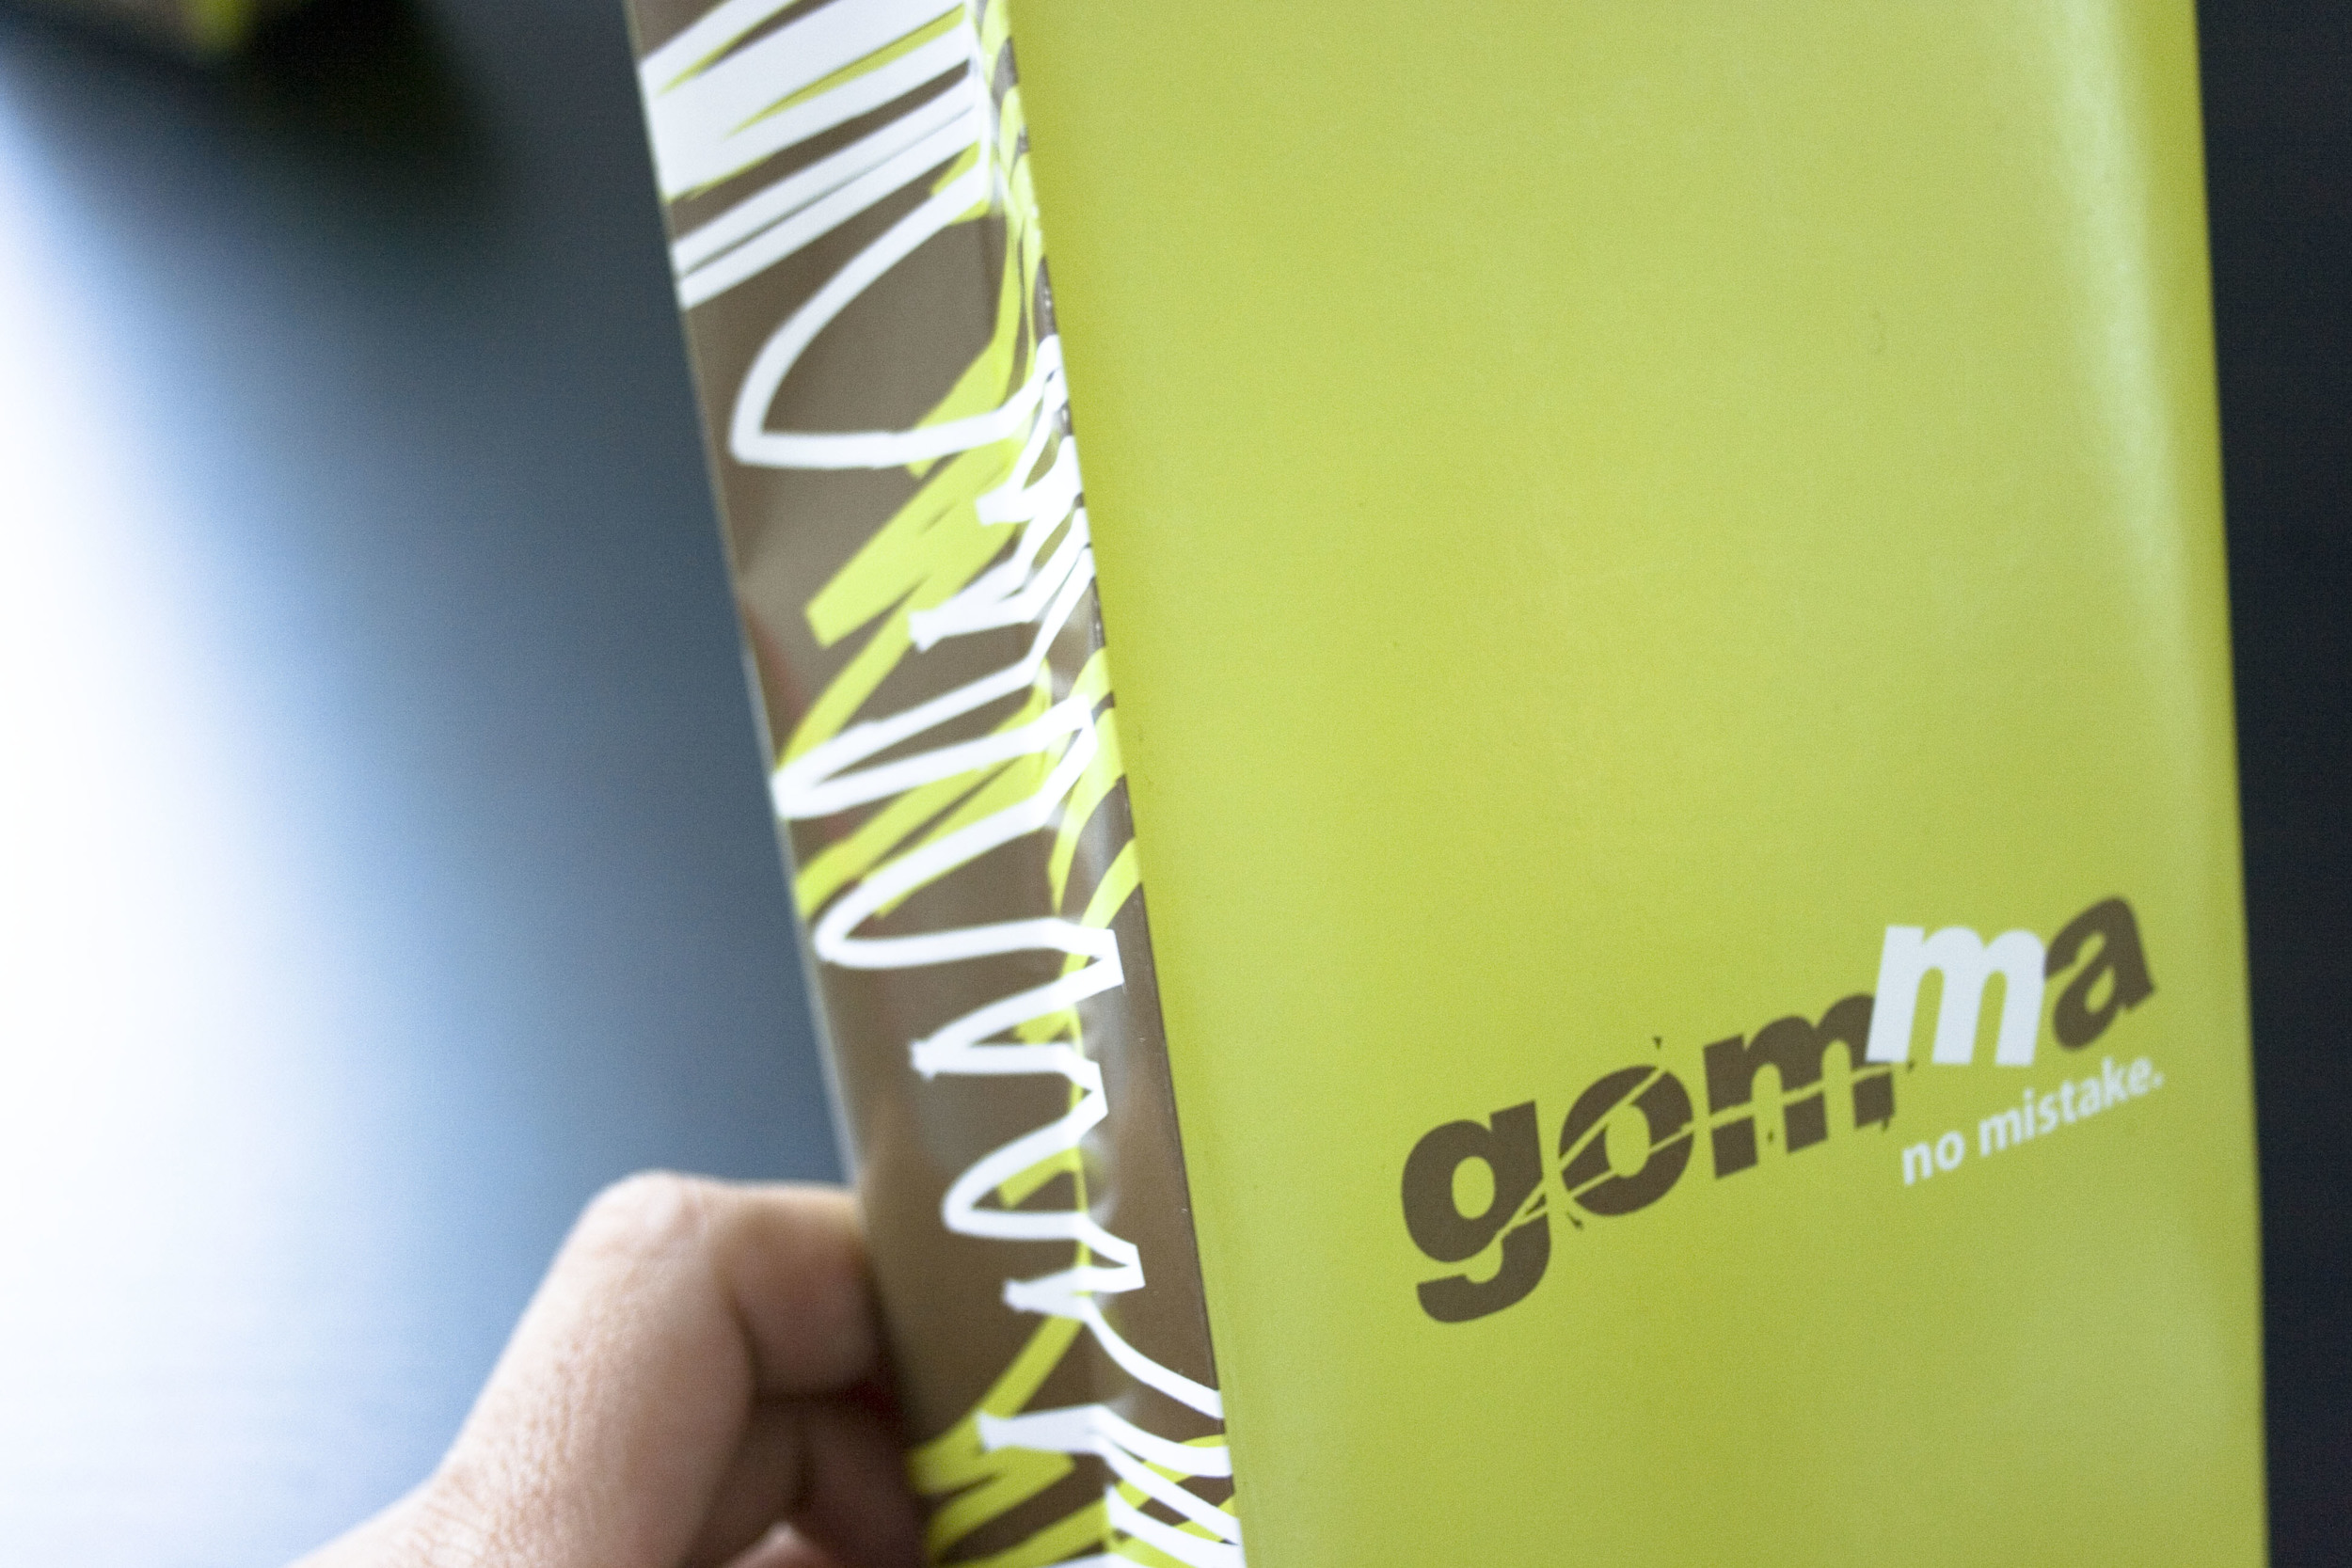 gomma_packaging_1.jpg